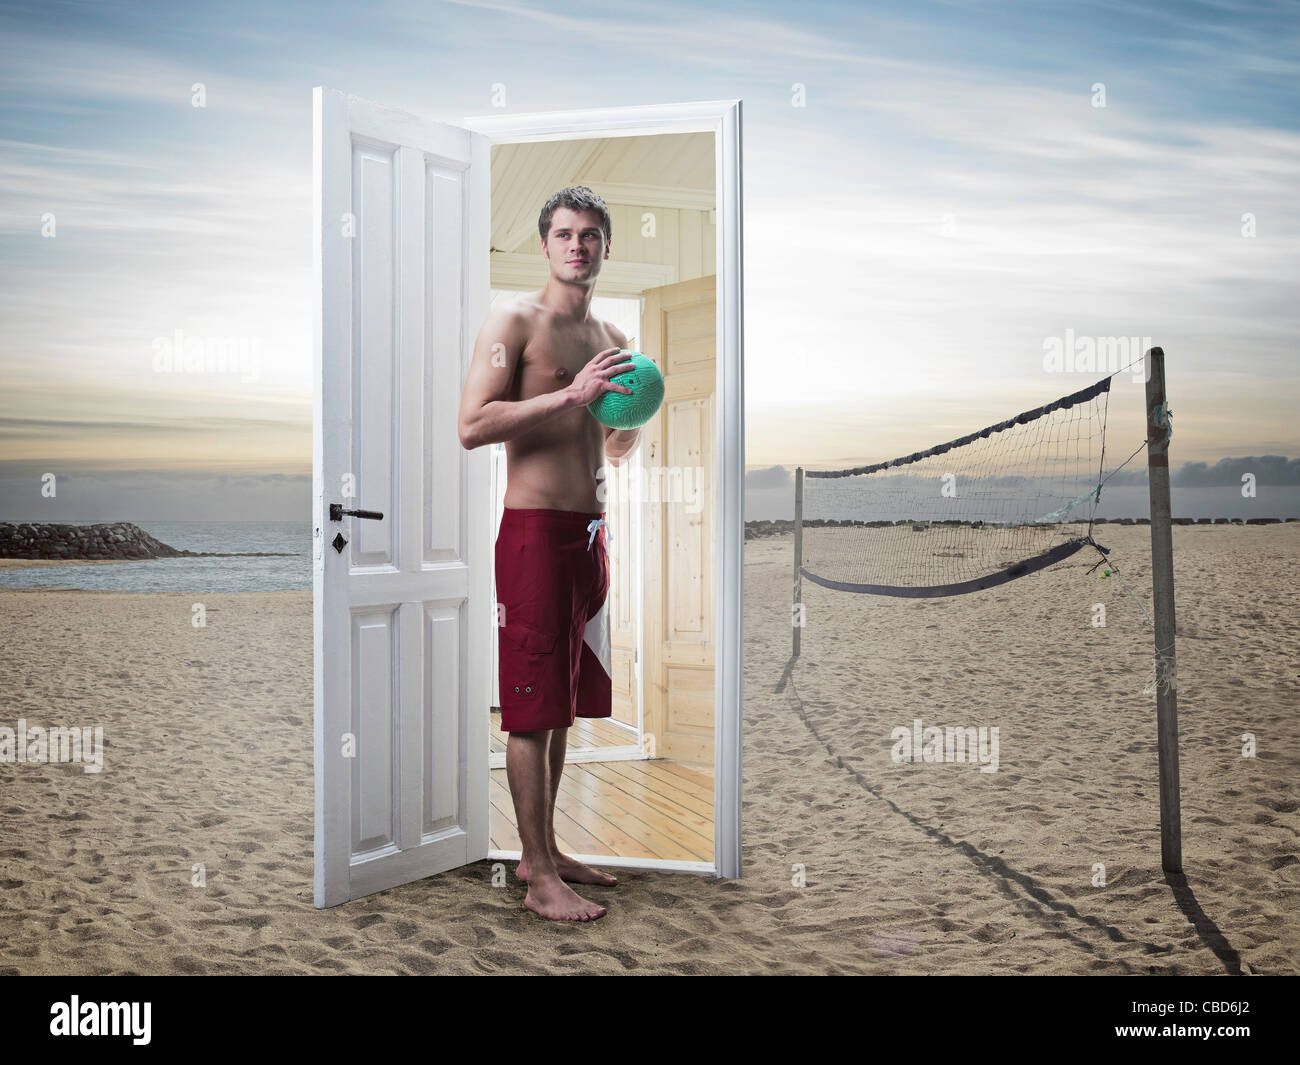 Man emerging from door on beach - Stock Image